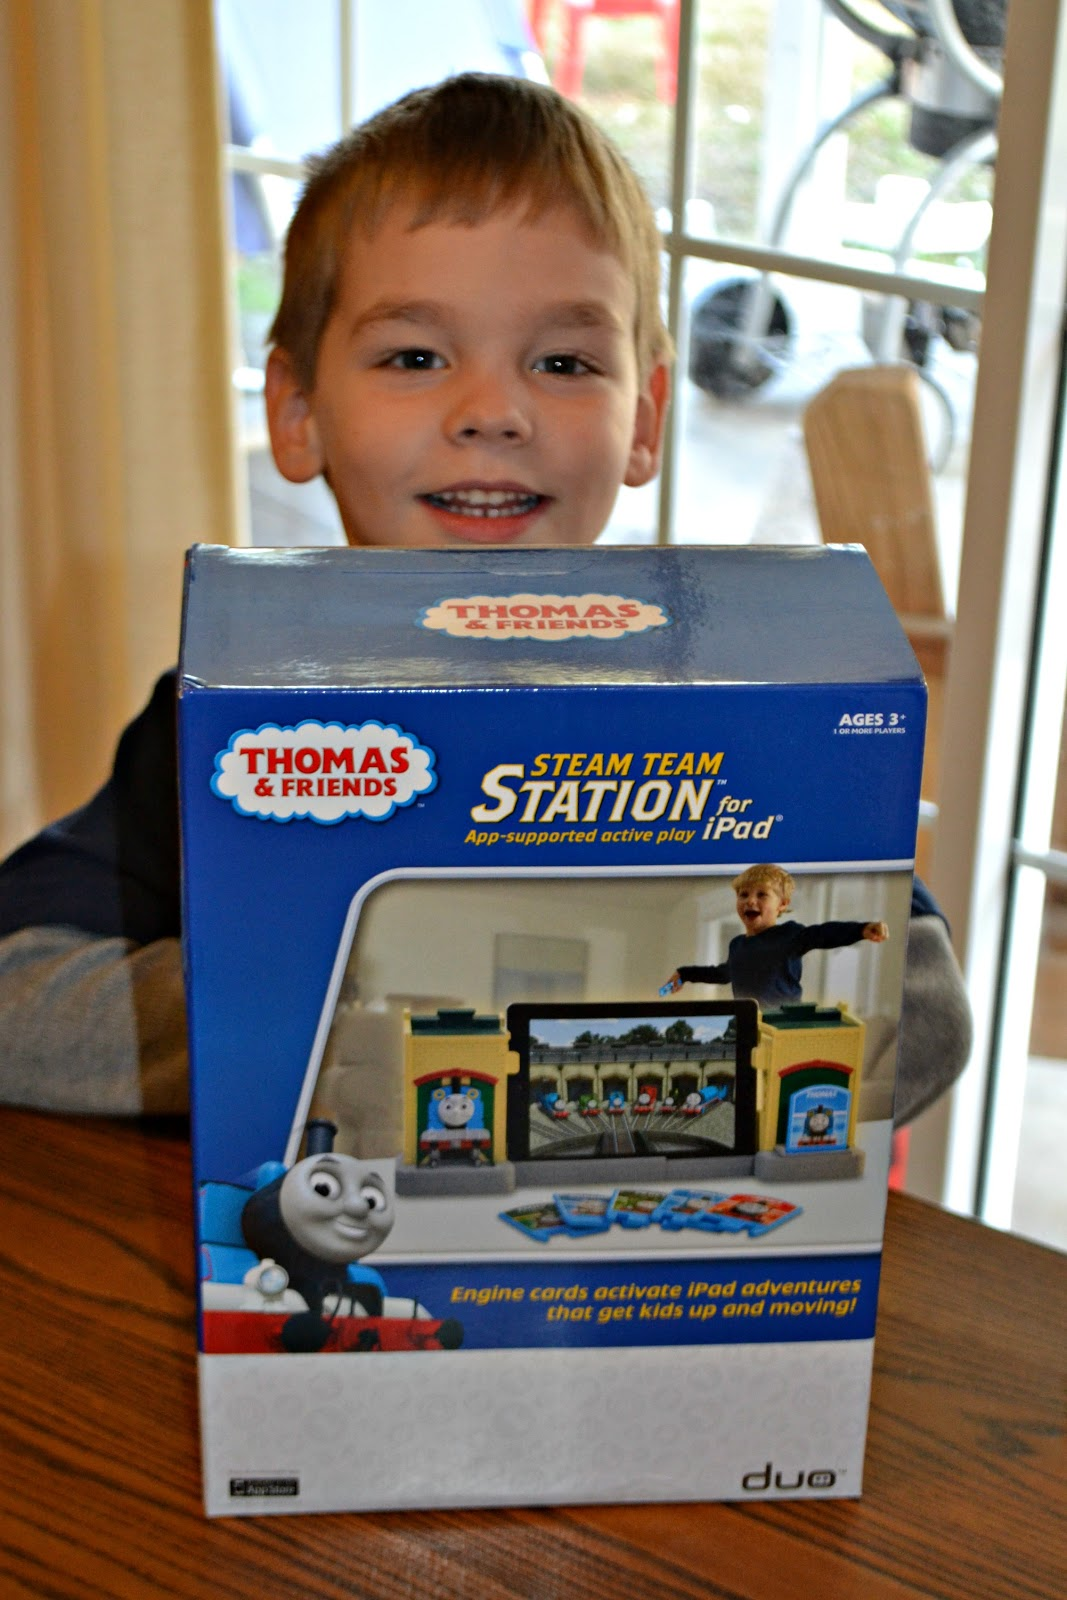 12 Year Old in Diapers http://www.ratherbechangingdiapers.com/2012/12/holiday-gift-guide-thomas-and-friends.html